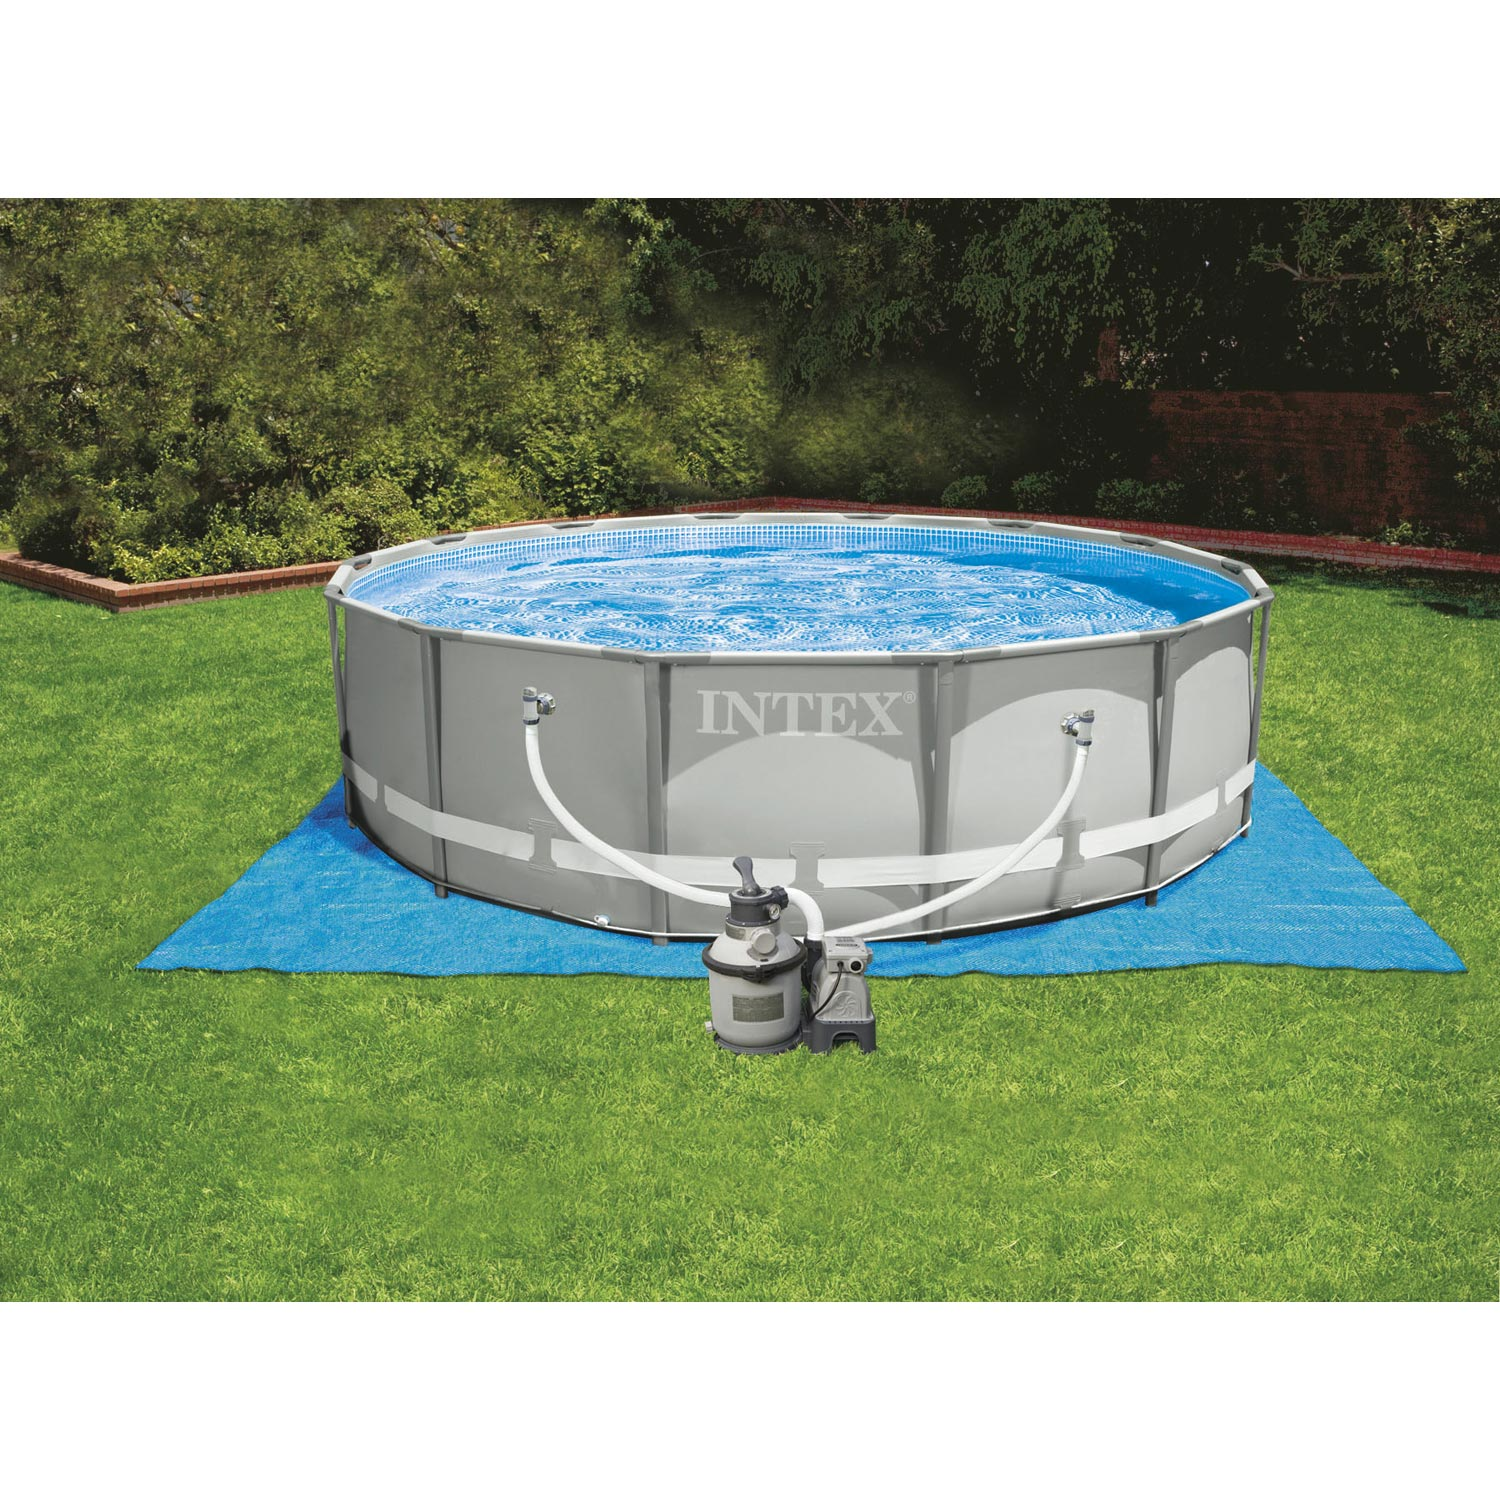 Piscine hors sol autoportante tubulaire ultraframe intex for Piscine hors sol hauteur 1m50